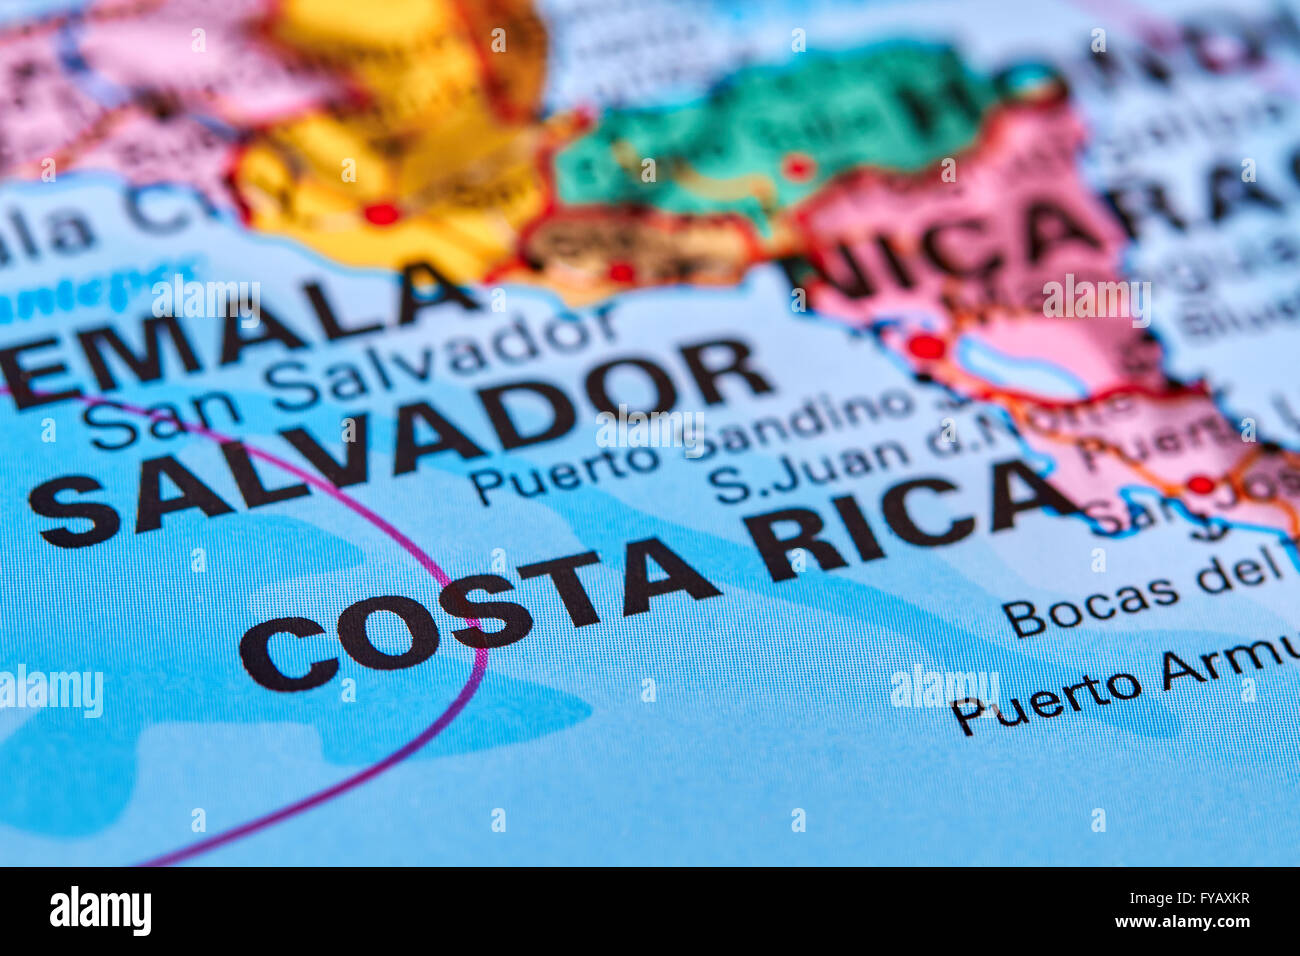 Costa rica country in central america on the world map stock photo costa rica country in central america on the world map gumiabroncs Images